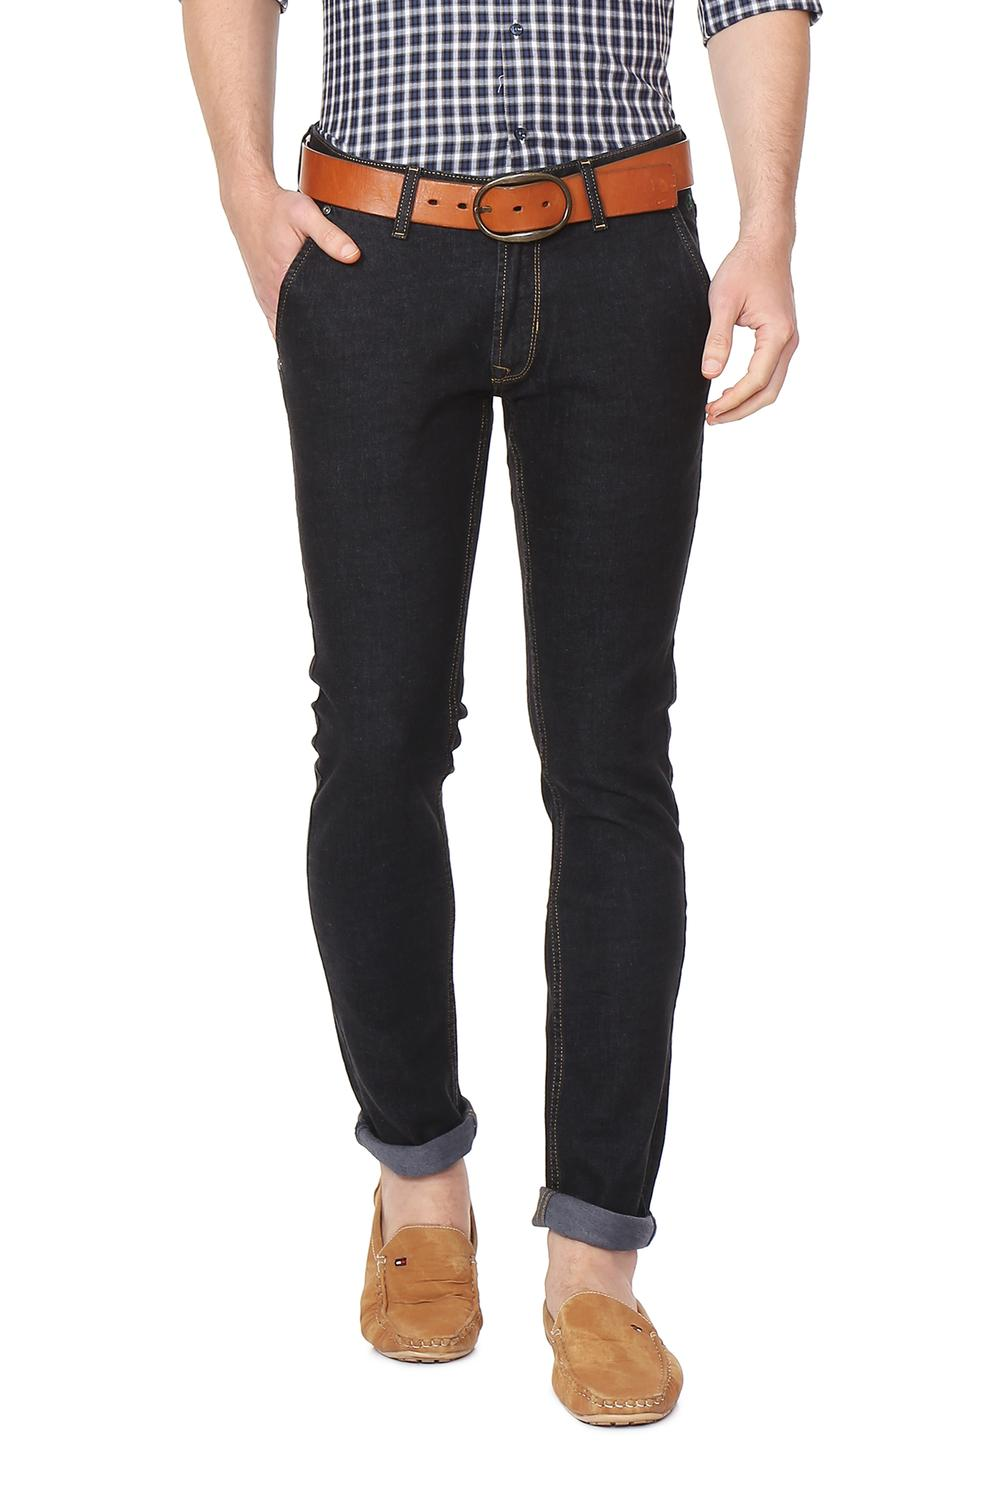 online retailer temperament shoes shoes for cheap Peter England Jeans Jeans, Peter England Blue Jeans for Men at ...